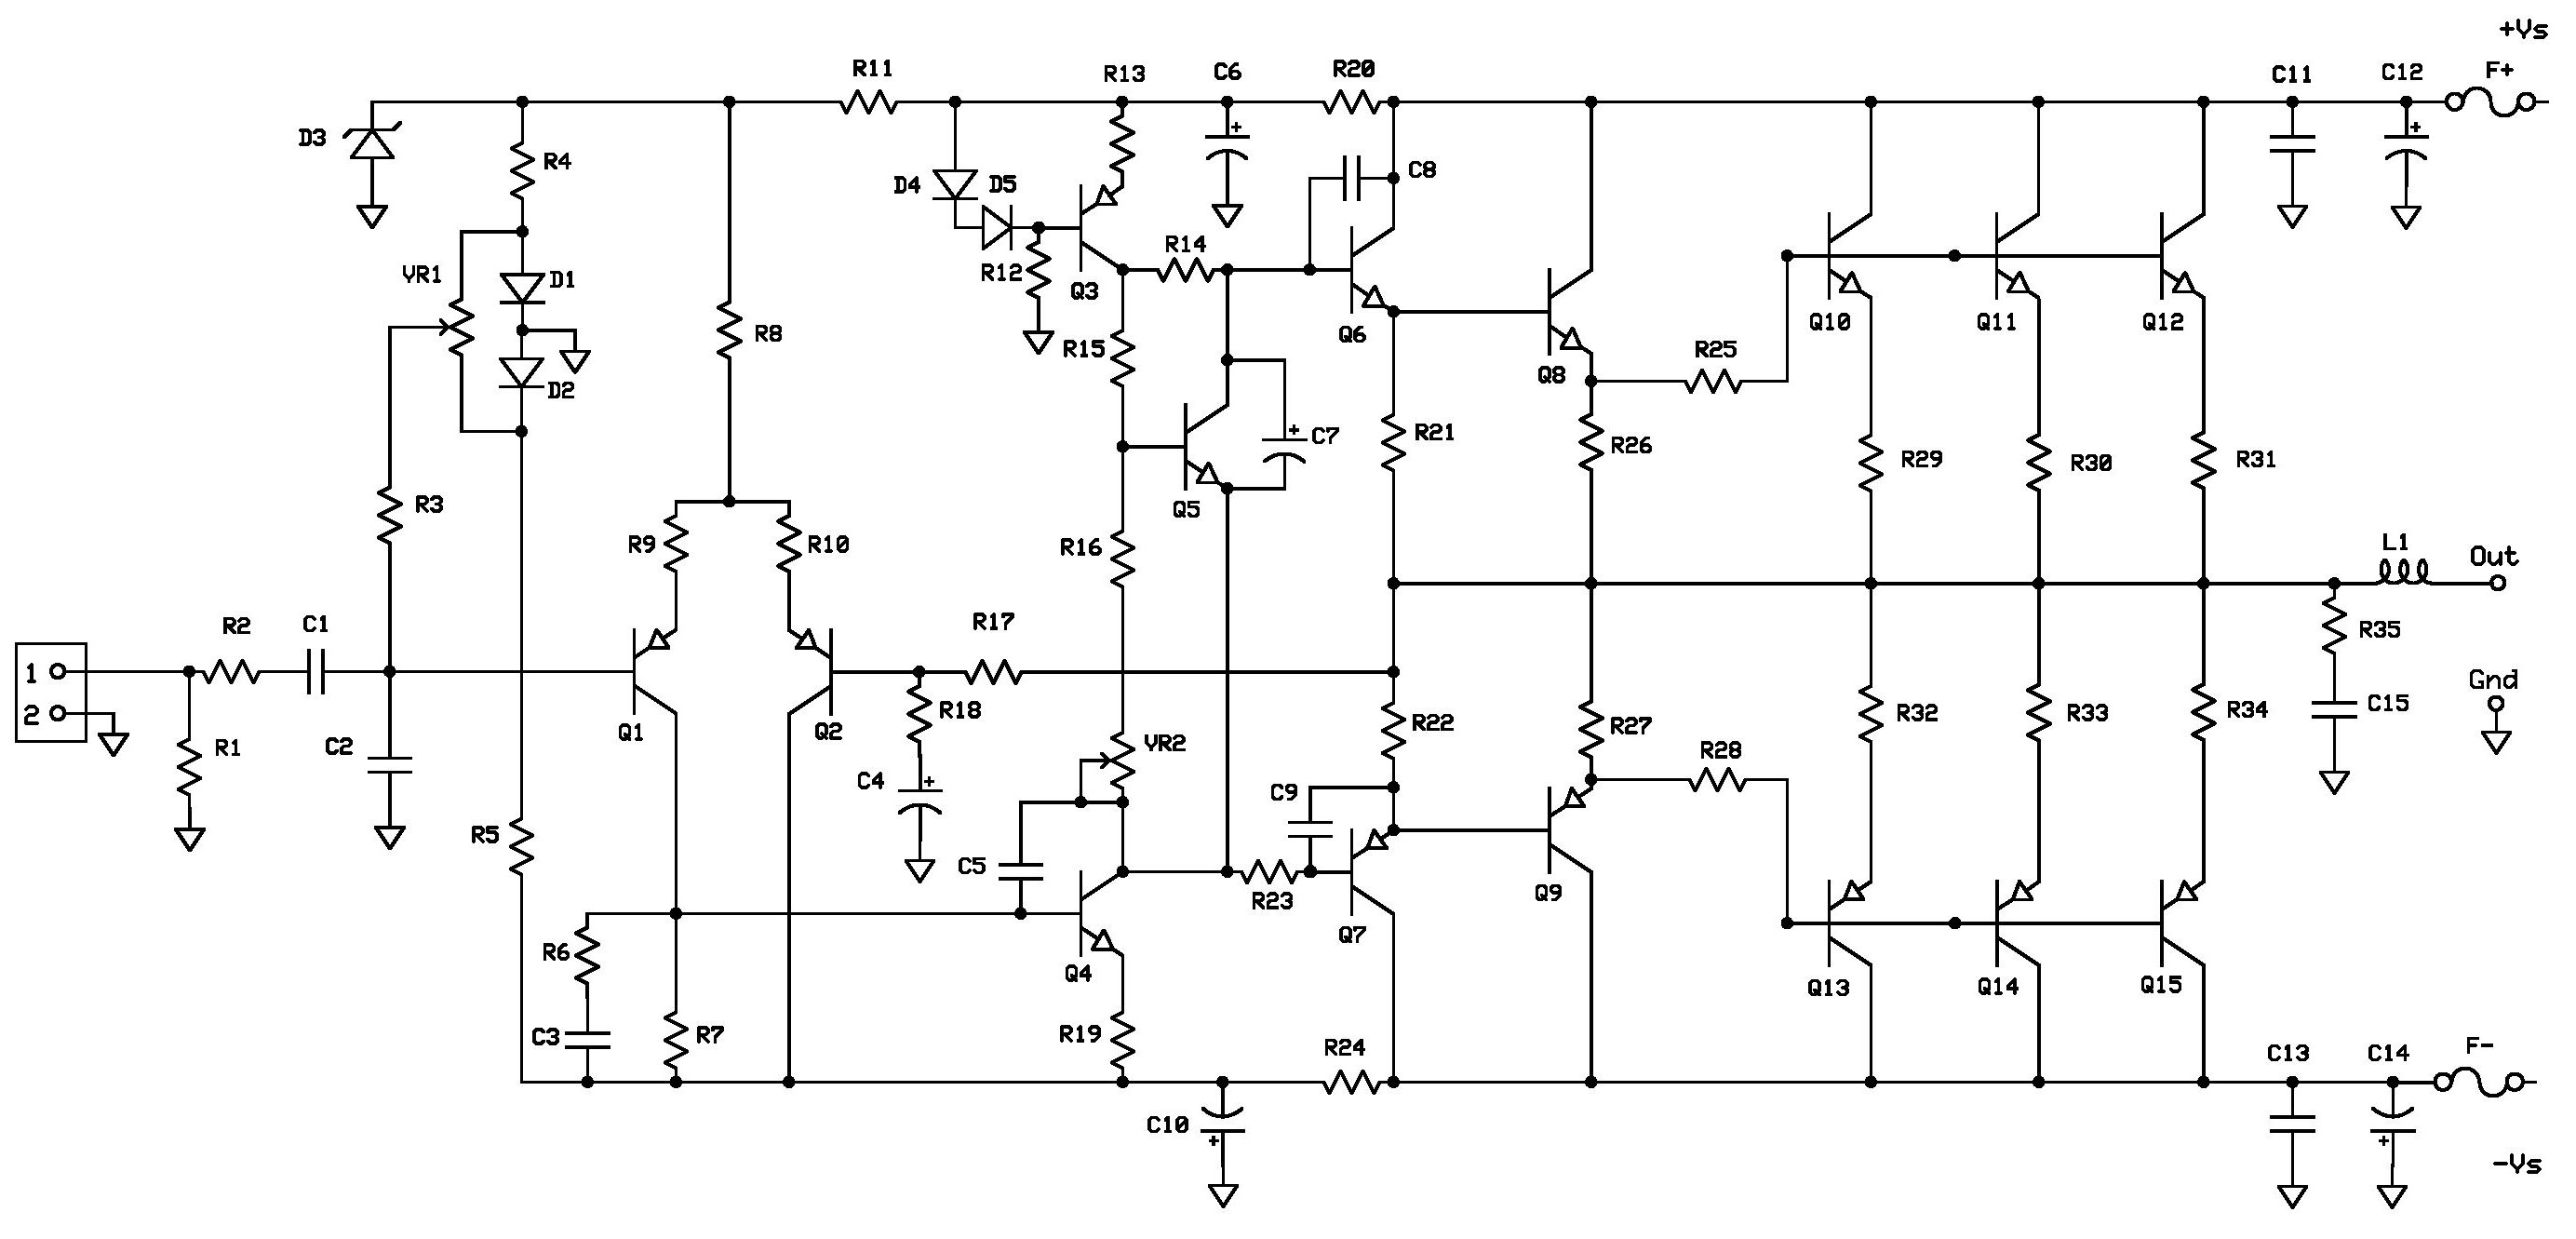 2sc5200 2sa19 43 Amplifier Circuit - Project2 Schematic Diagram Page 001 -  2sc5200 2sa1943 Amplifier Circuit